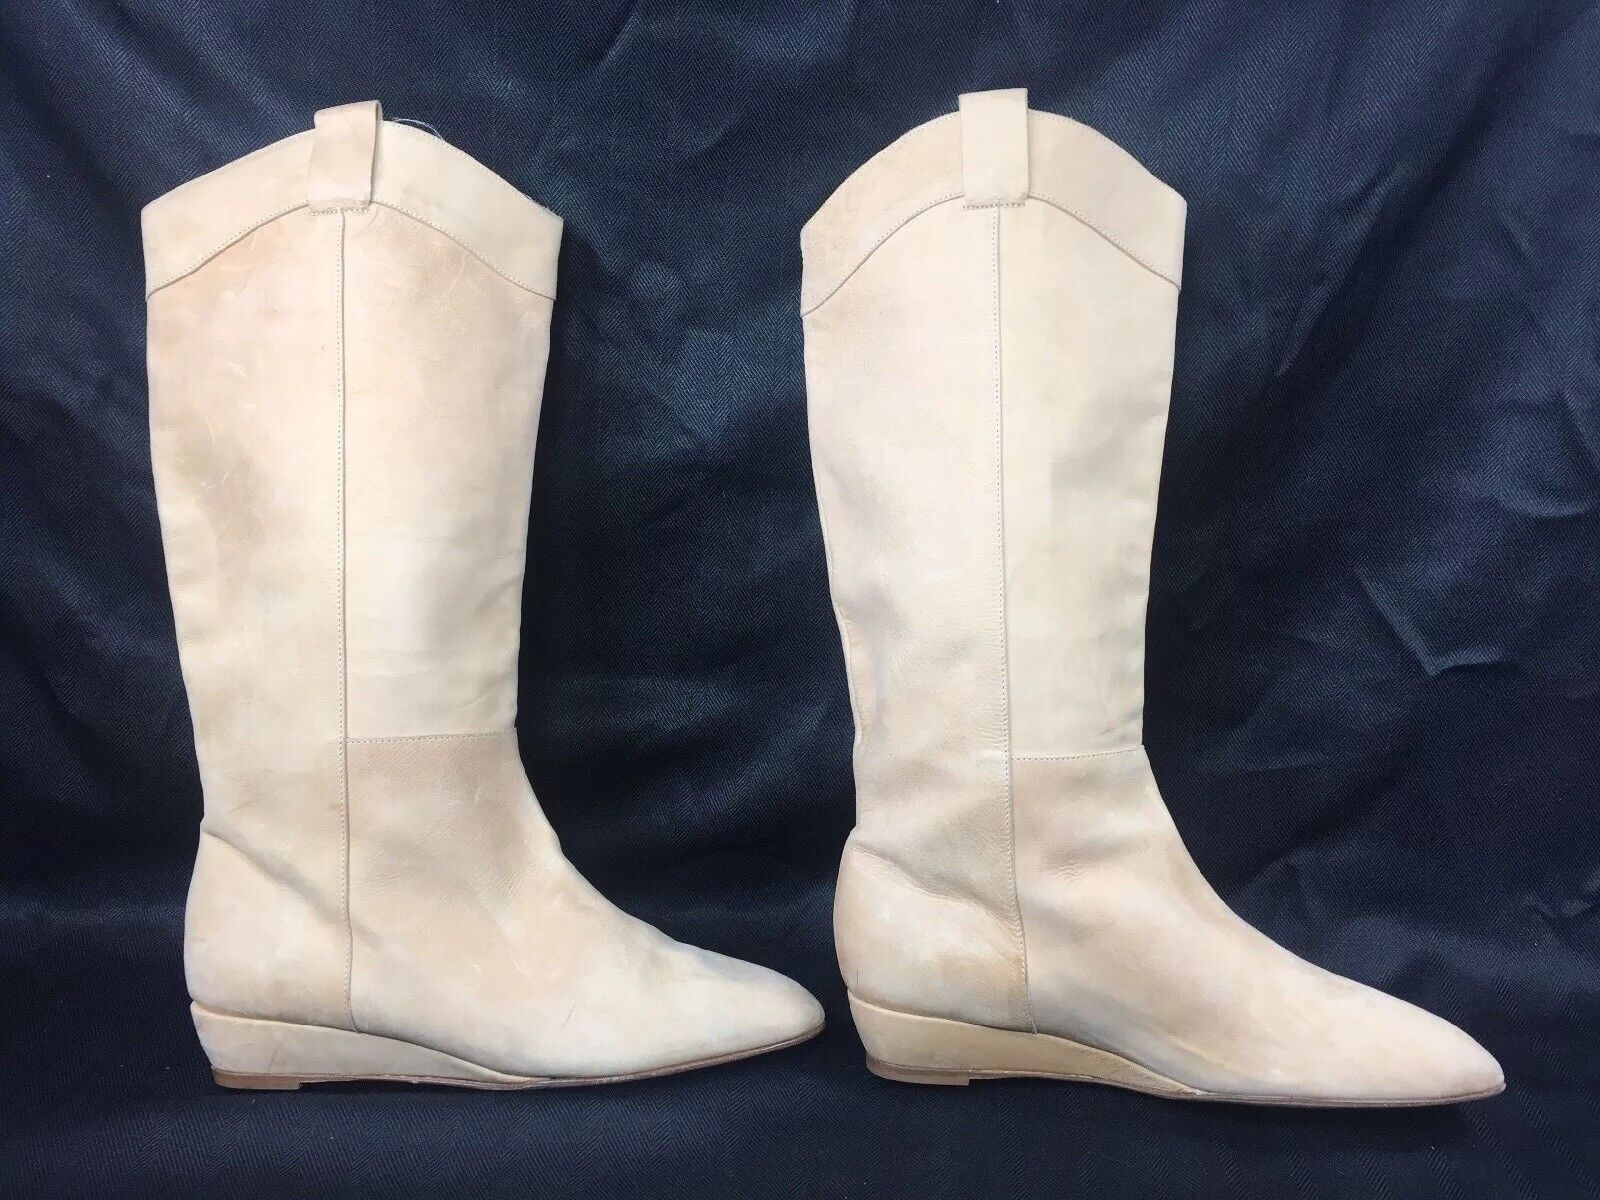 LOEFFLER RANDALL  695 Tall Knee High Low Wedge Boots Minimalist Calfskin Nude  7